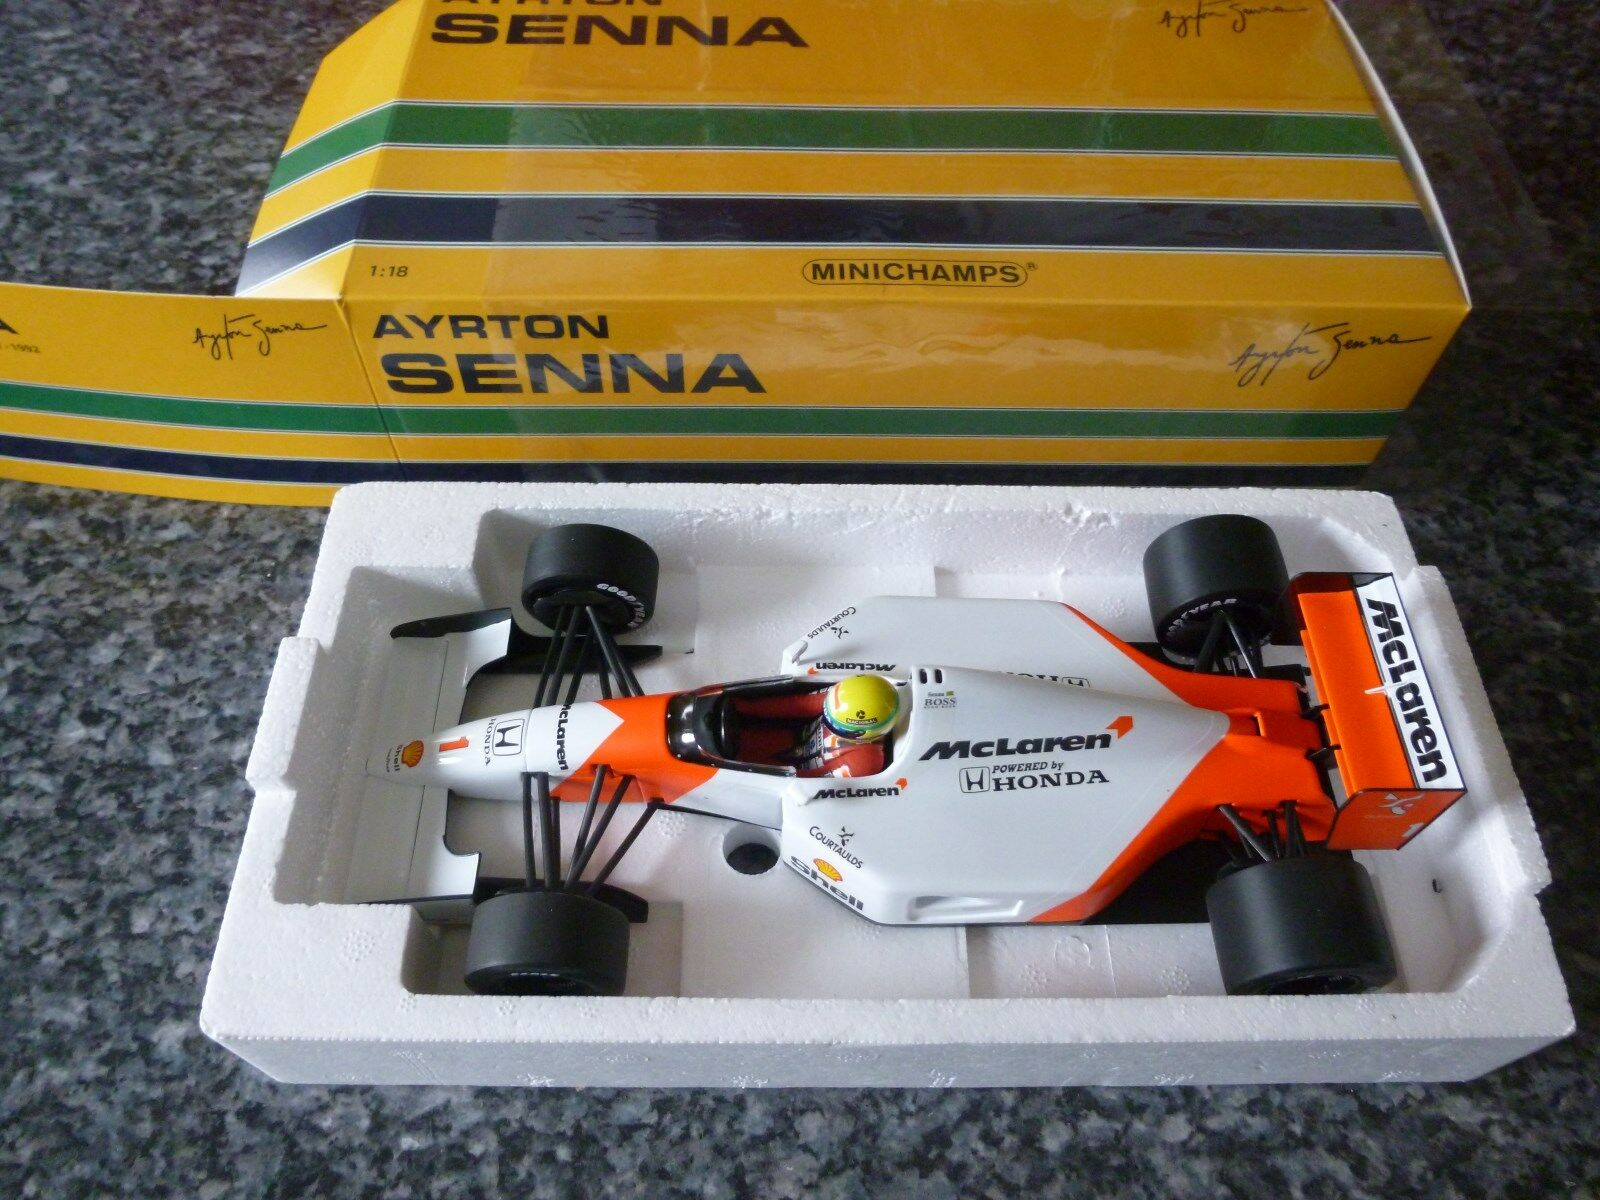 Minichamps 18th McLaren Honda MP4 7 1992 Ayrton Senna